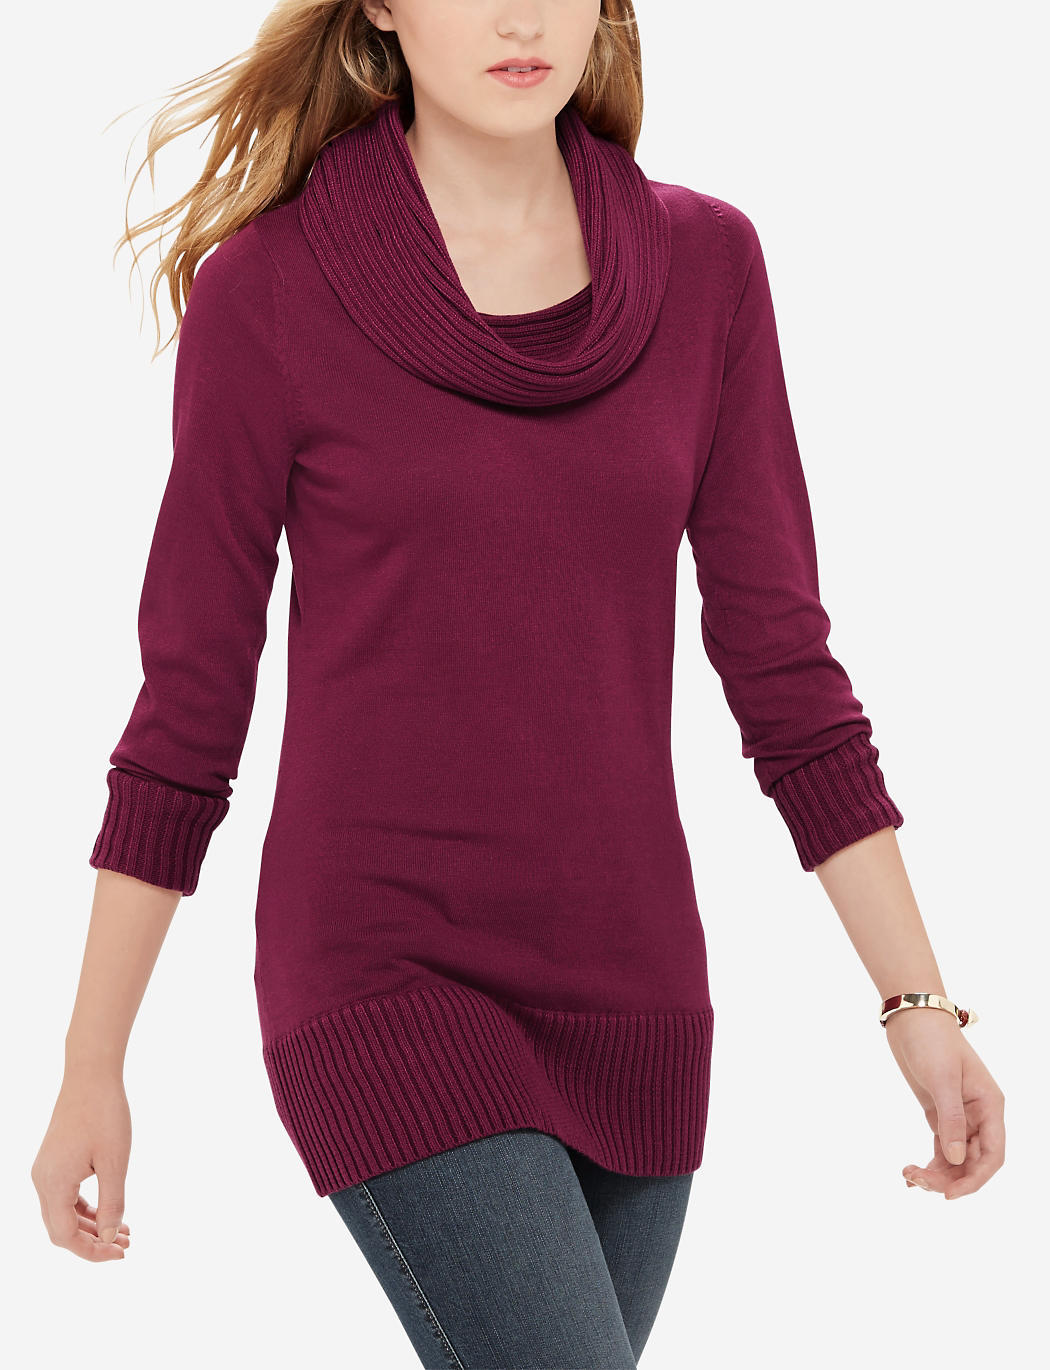 BOGO Free Select Women's Sweaters at The Limited